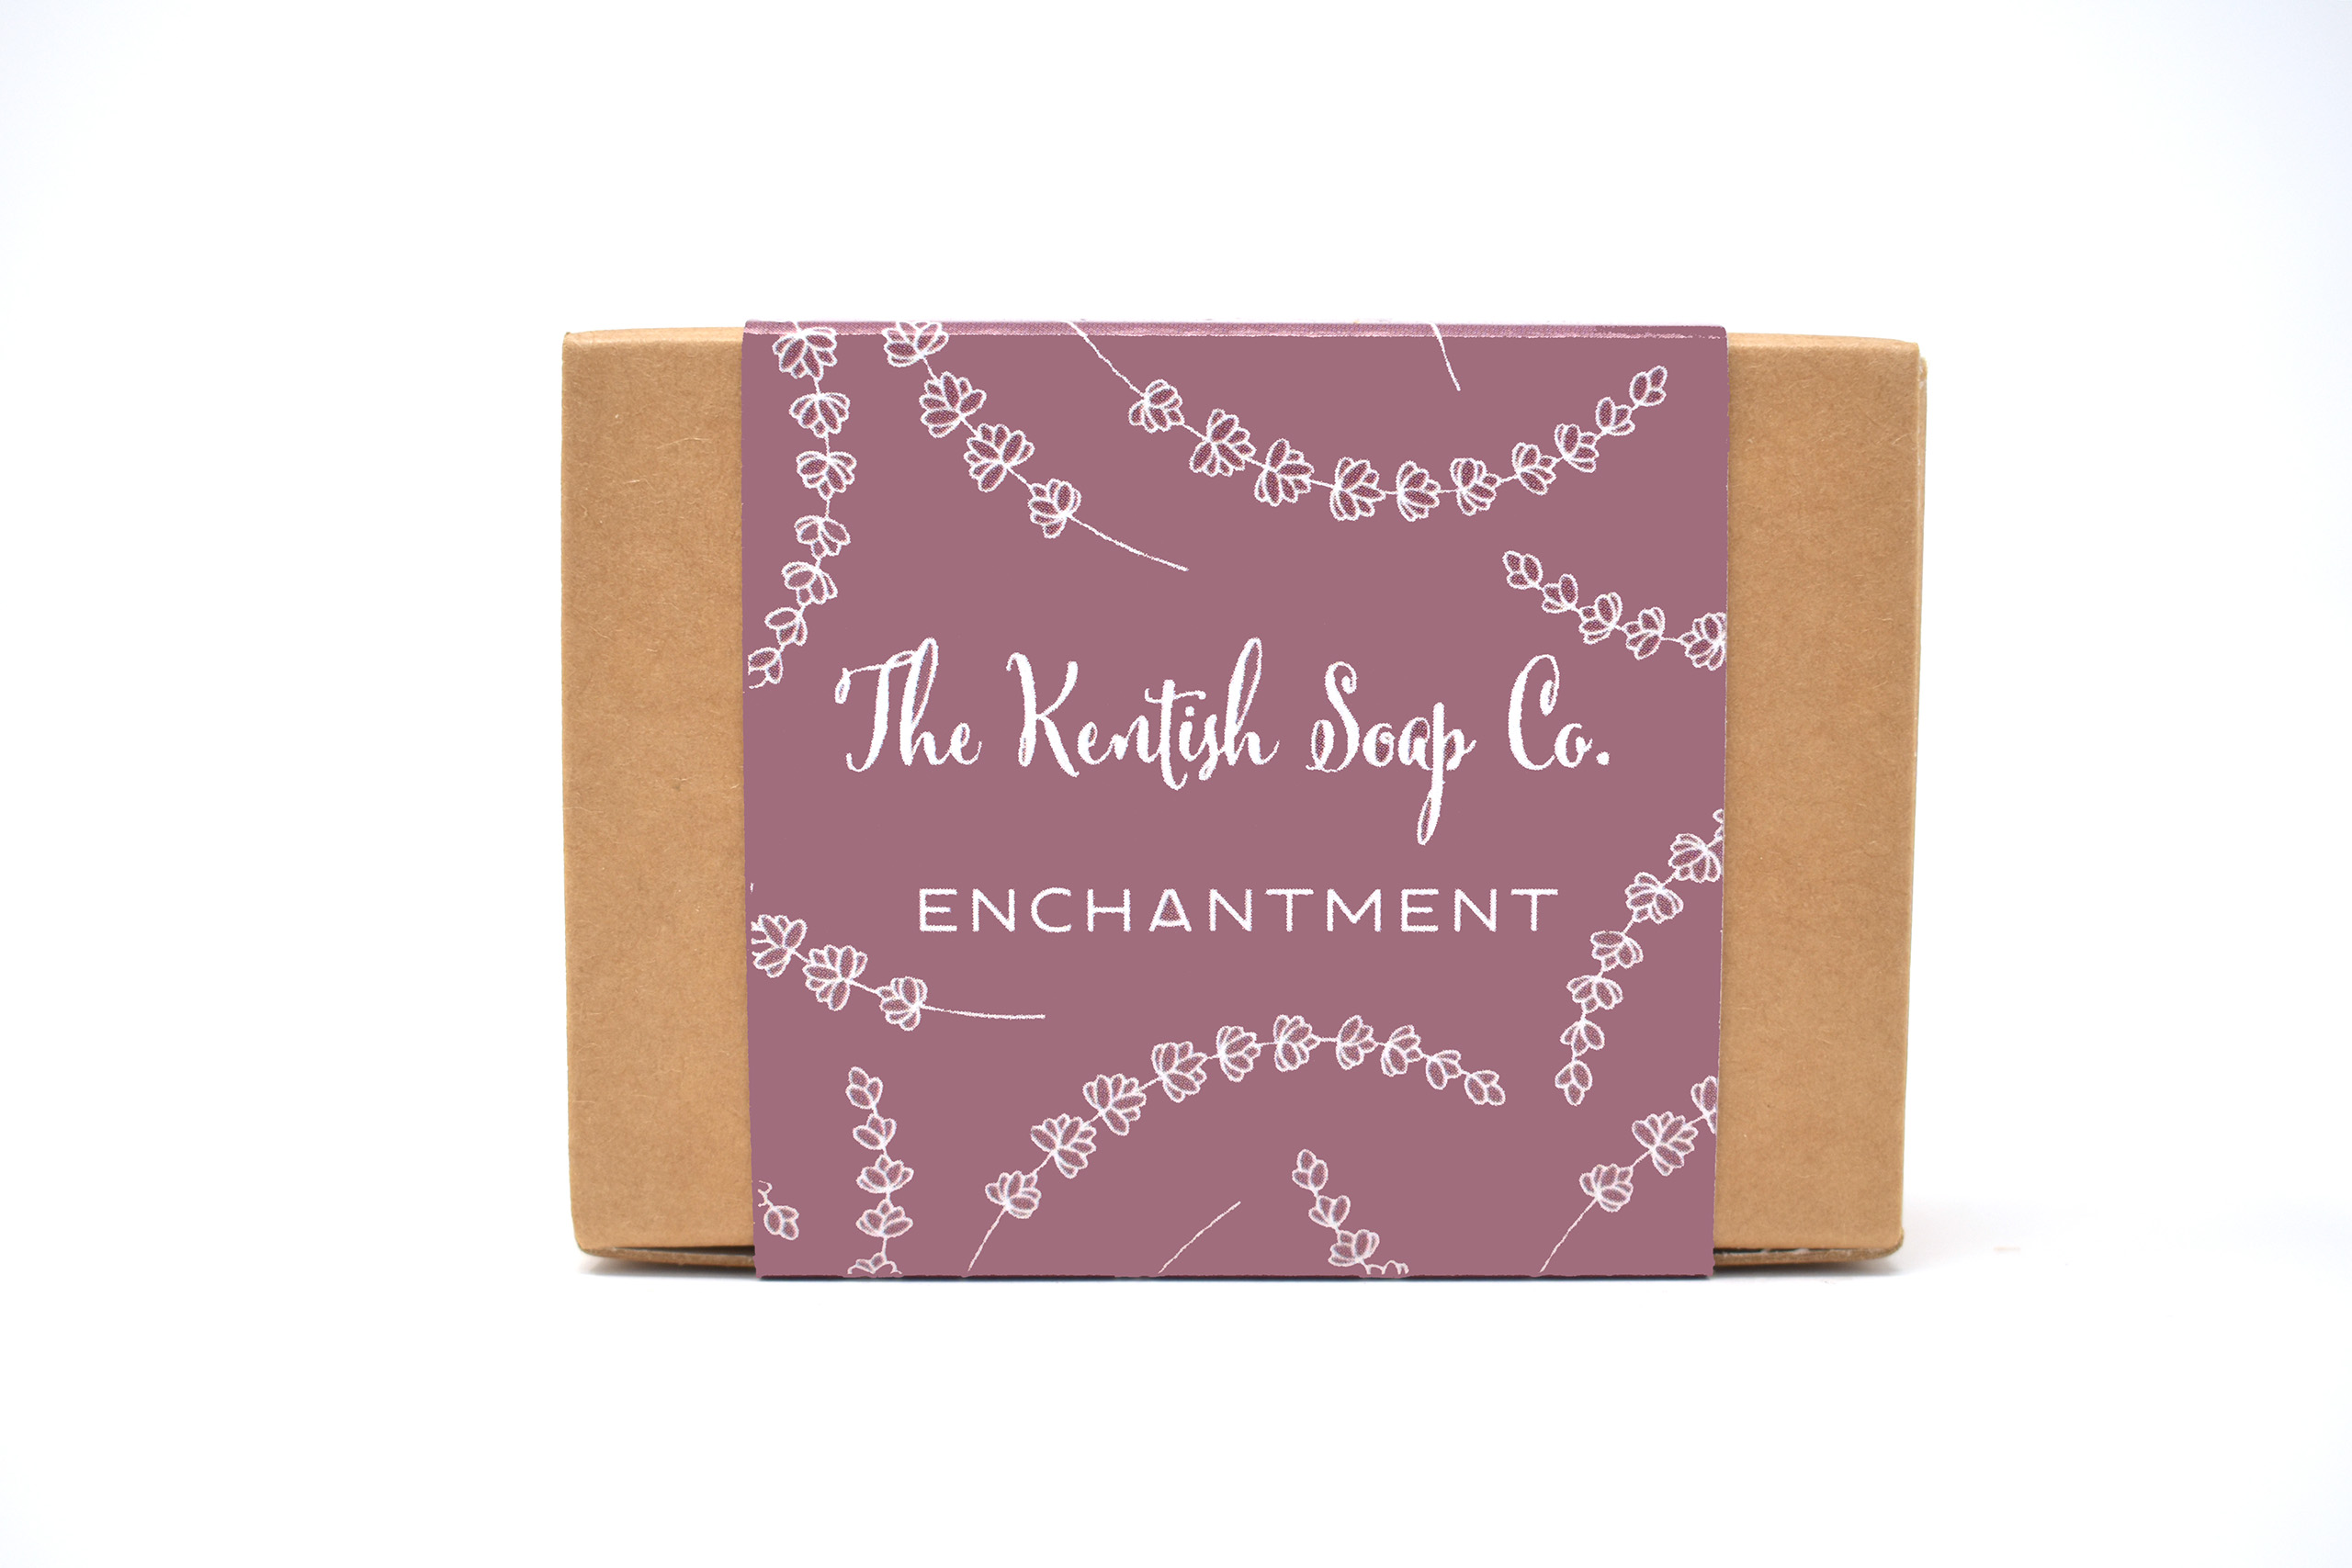 Enchantment Soap (in box) (1)